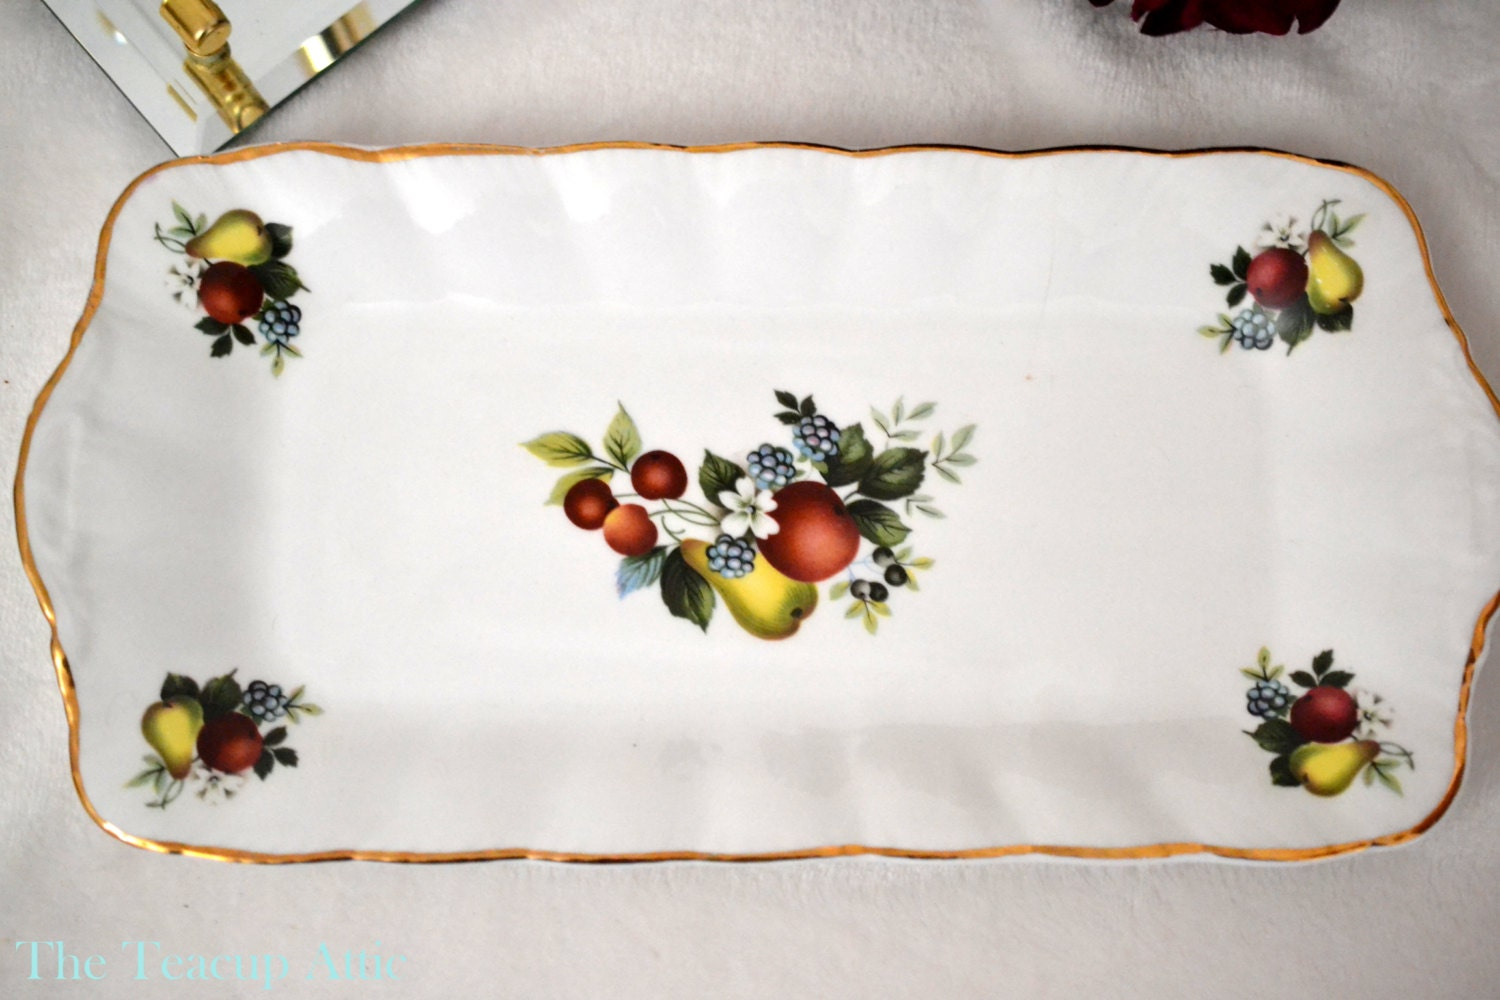 ON SALE Liverpool Road Pottery Fruit Motif Sandwich Tray, Bone China Sandwich Tray, Garden Tea Party, Wedding Gift,  ca. unknown